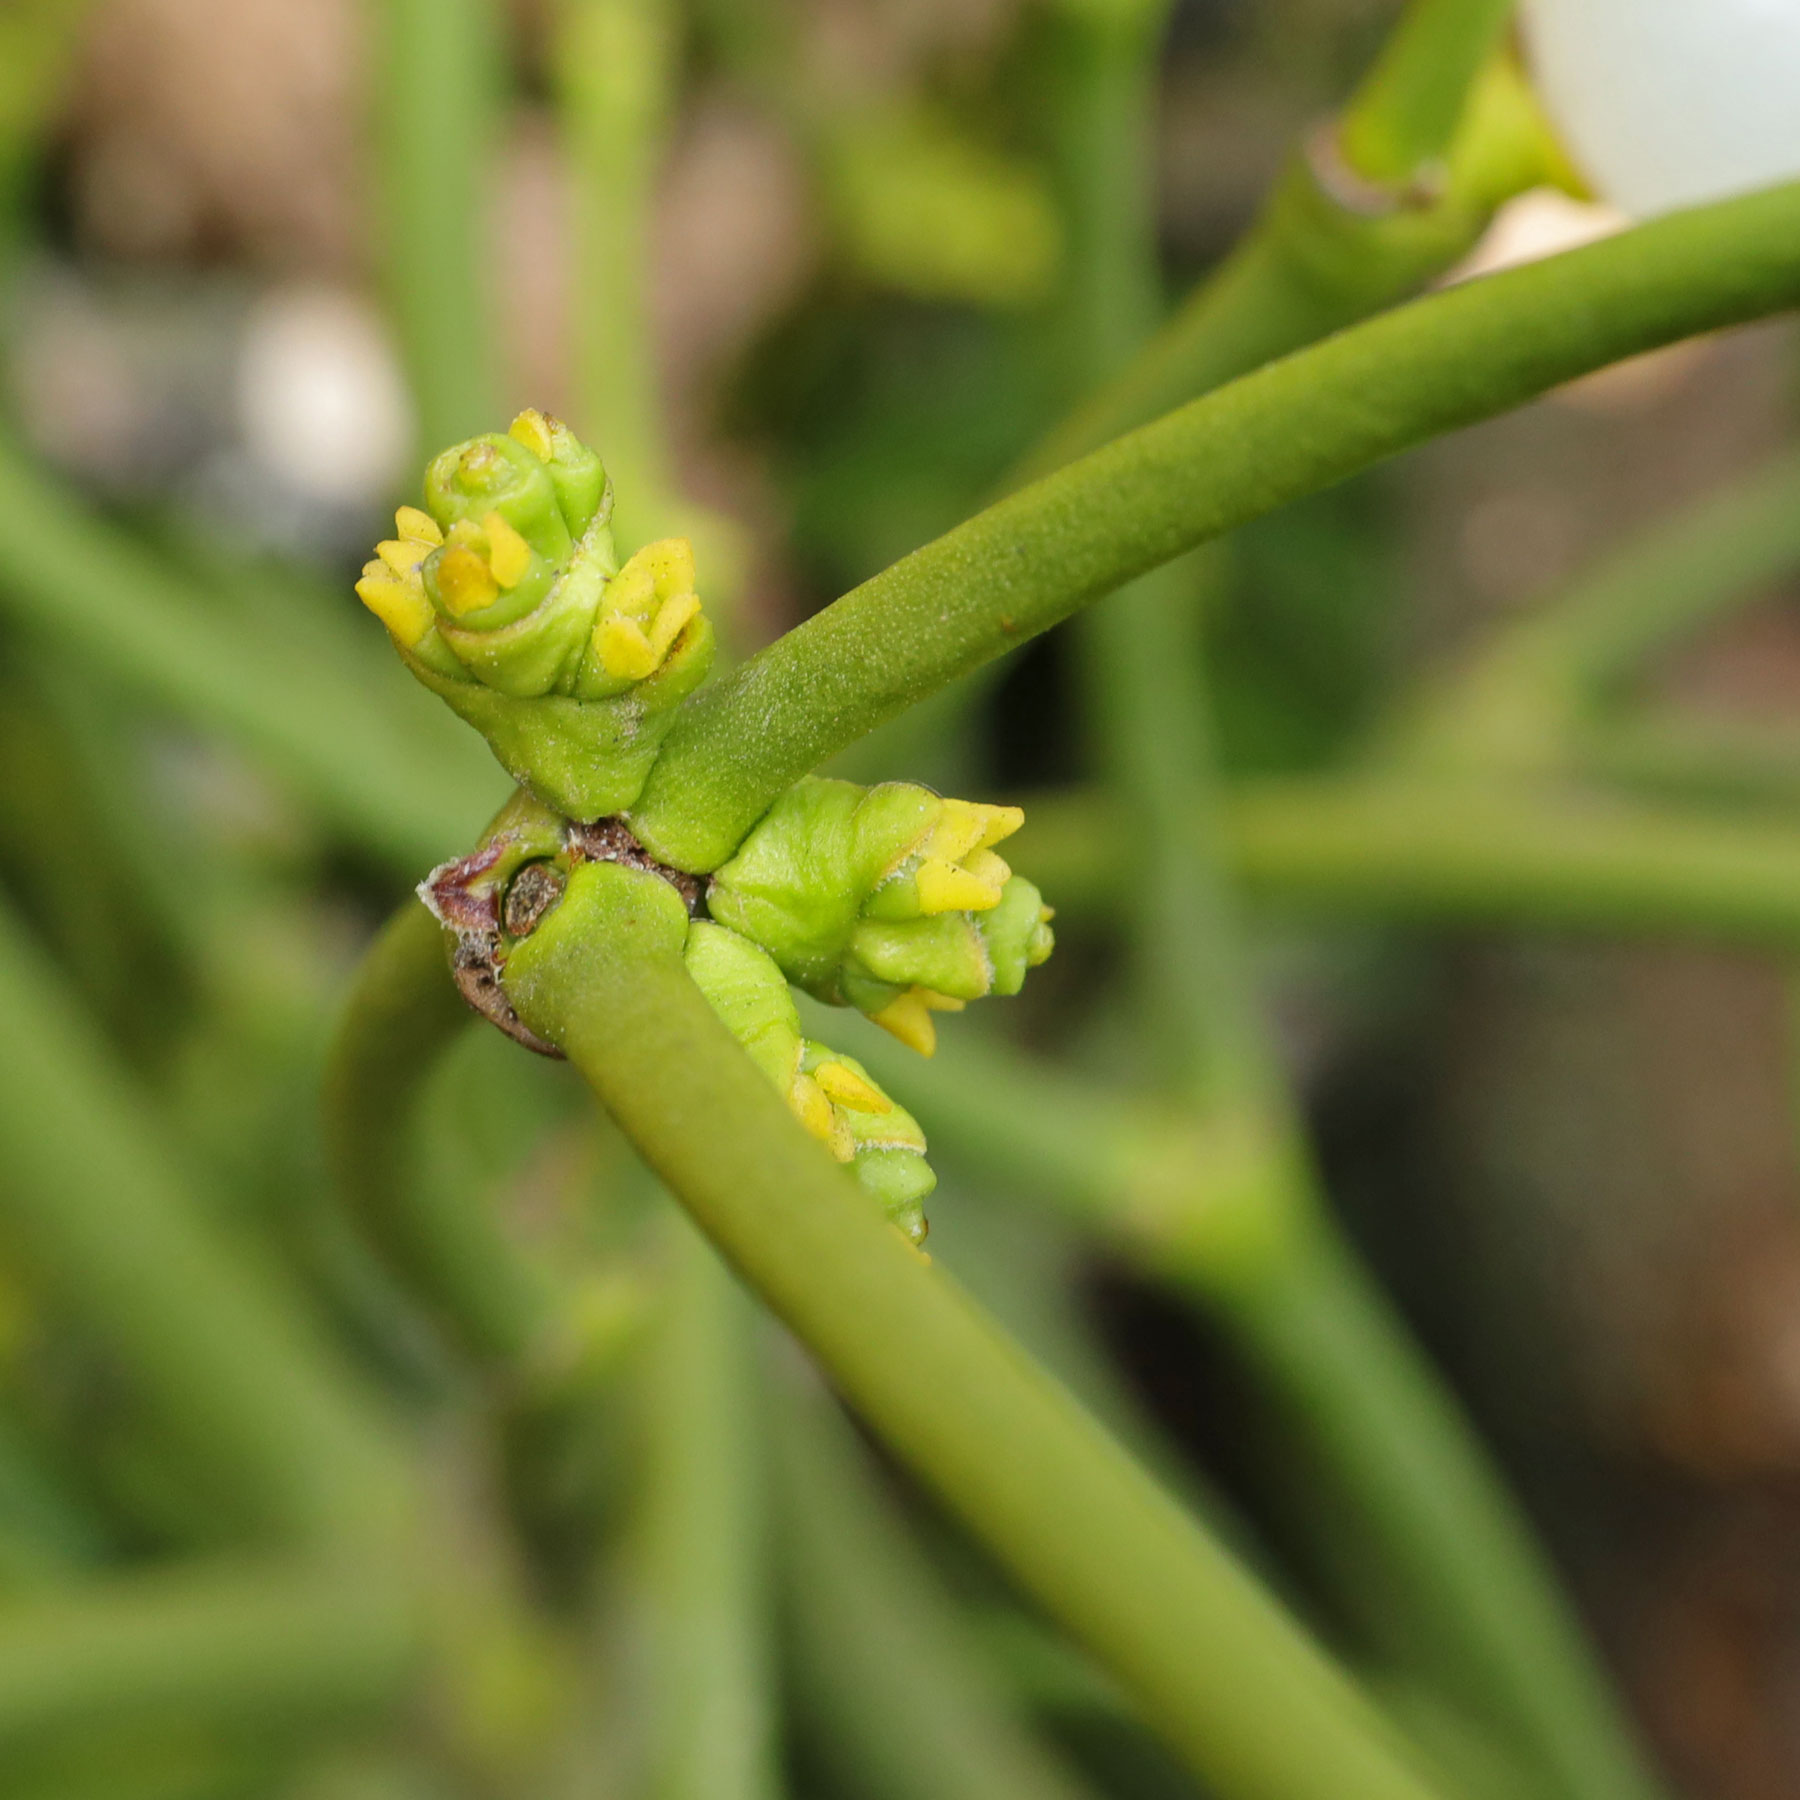 Mistletoe flowers